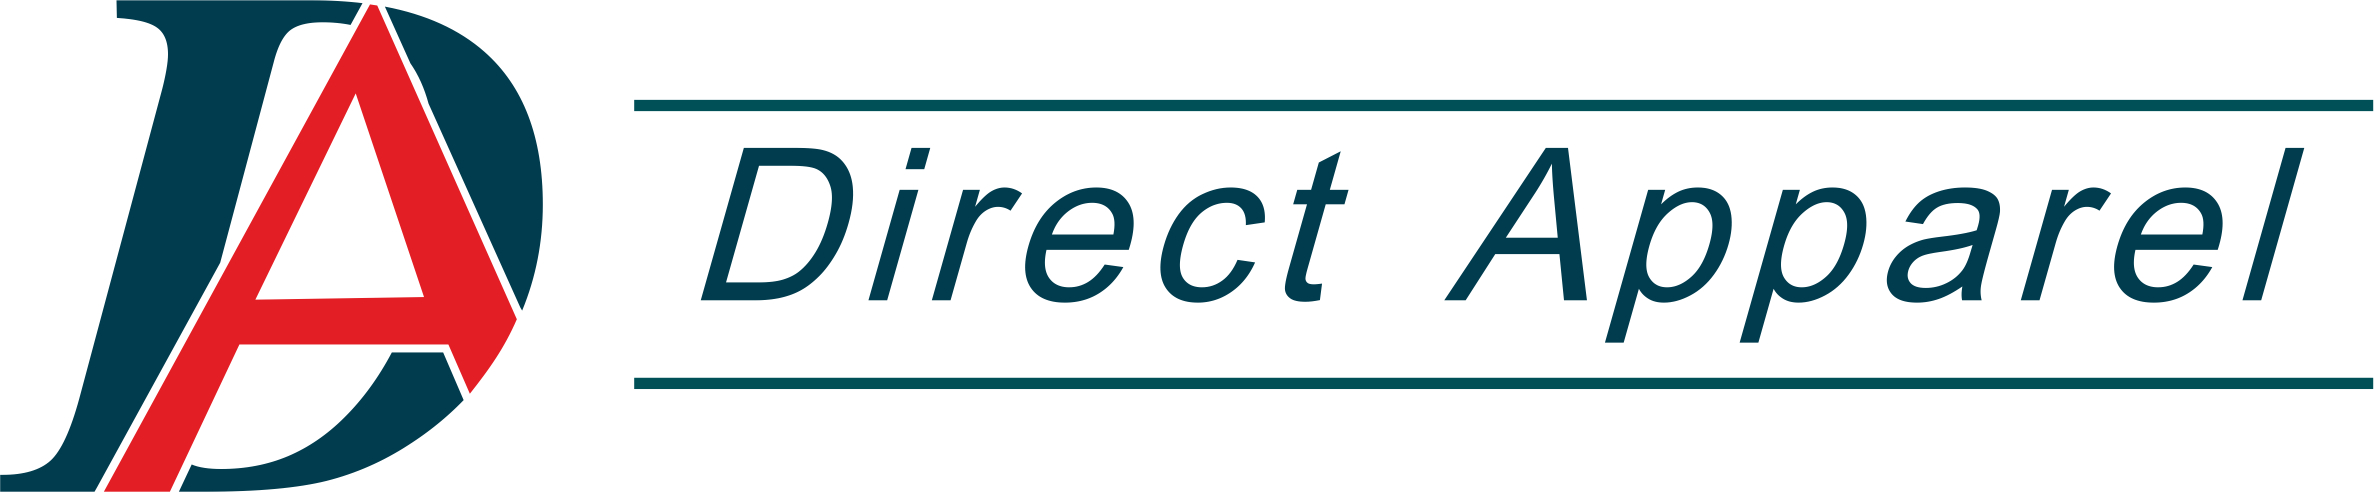 Direct Apparel